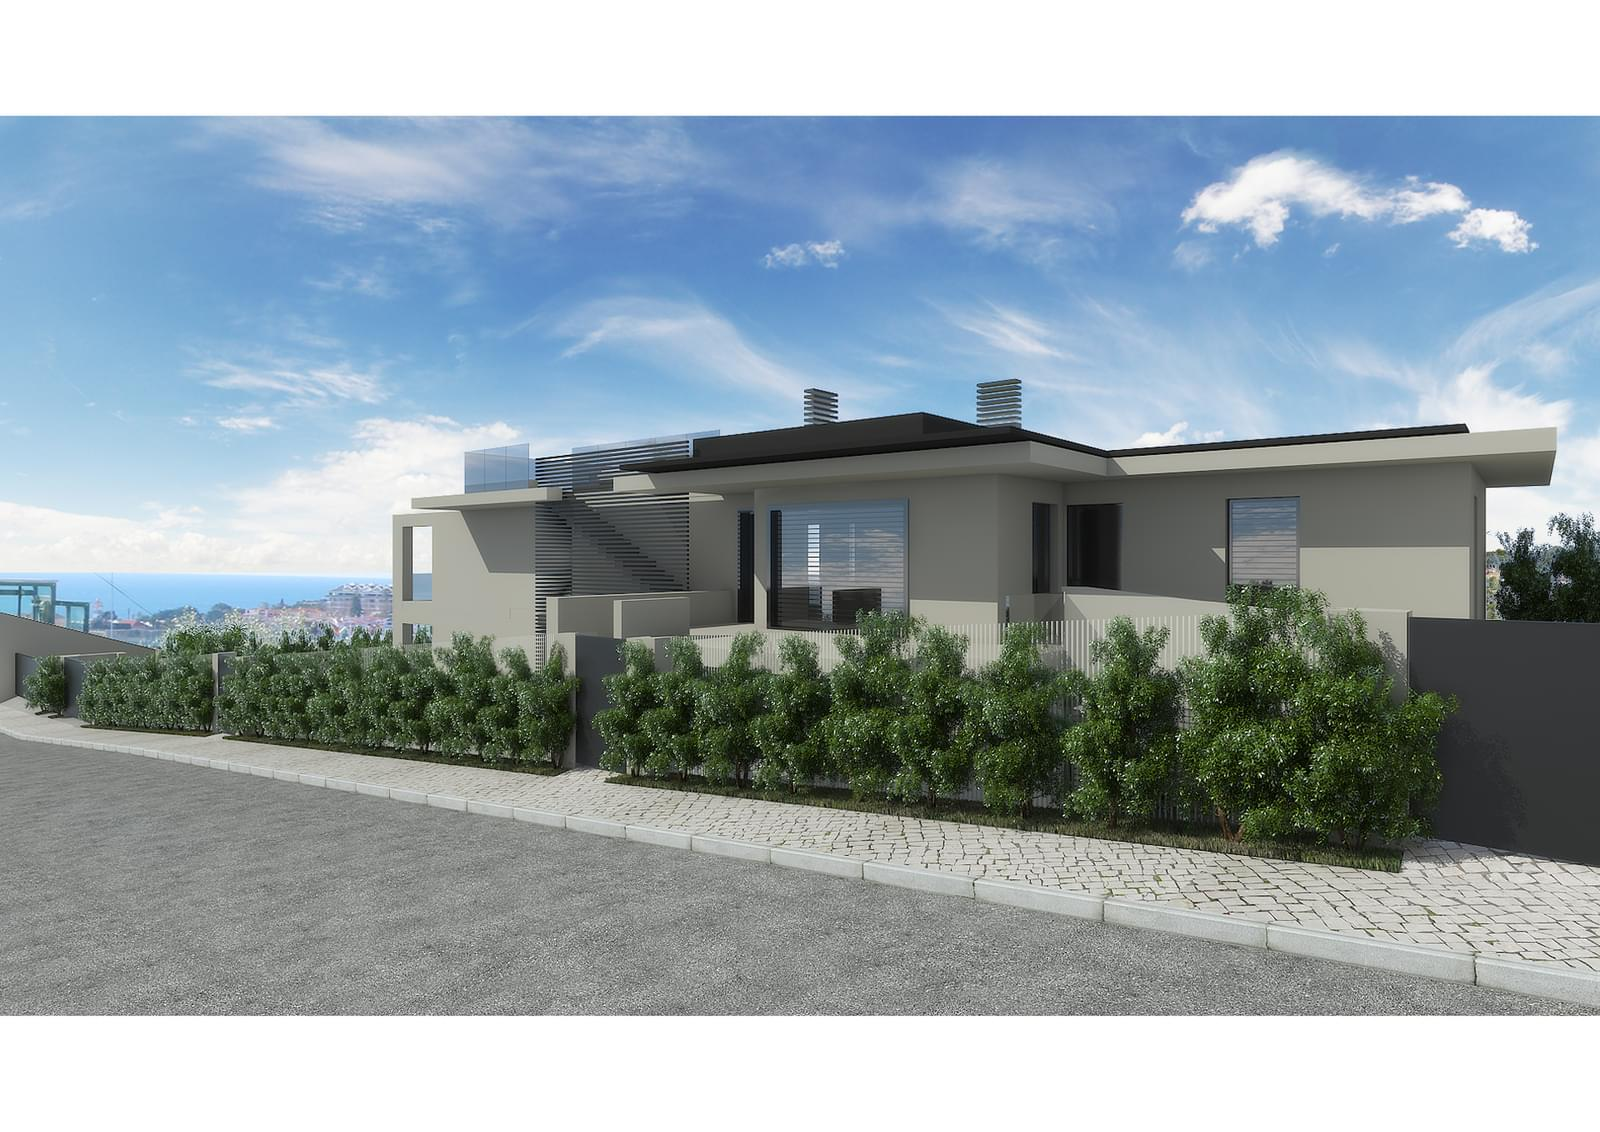 4 bedroom duplex with a swimming pool in gated community